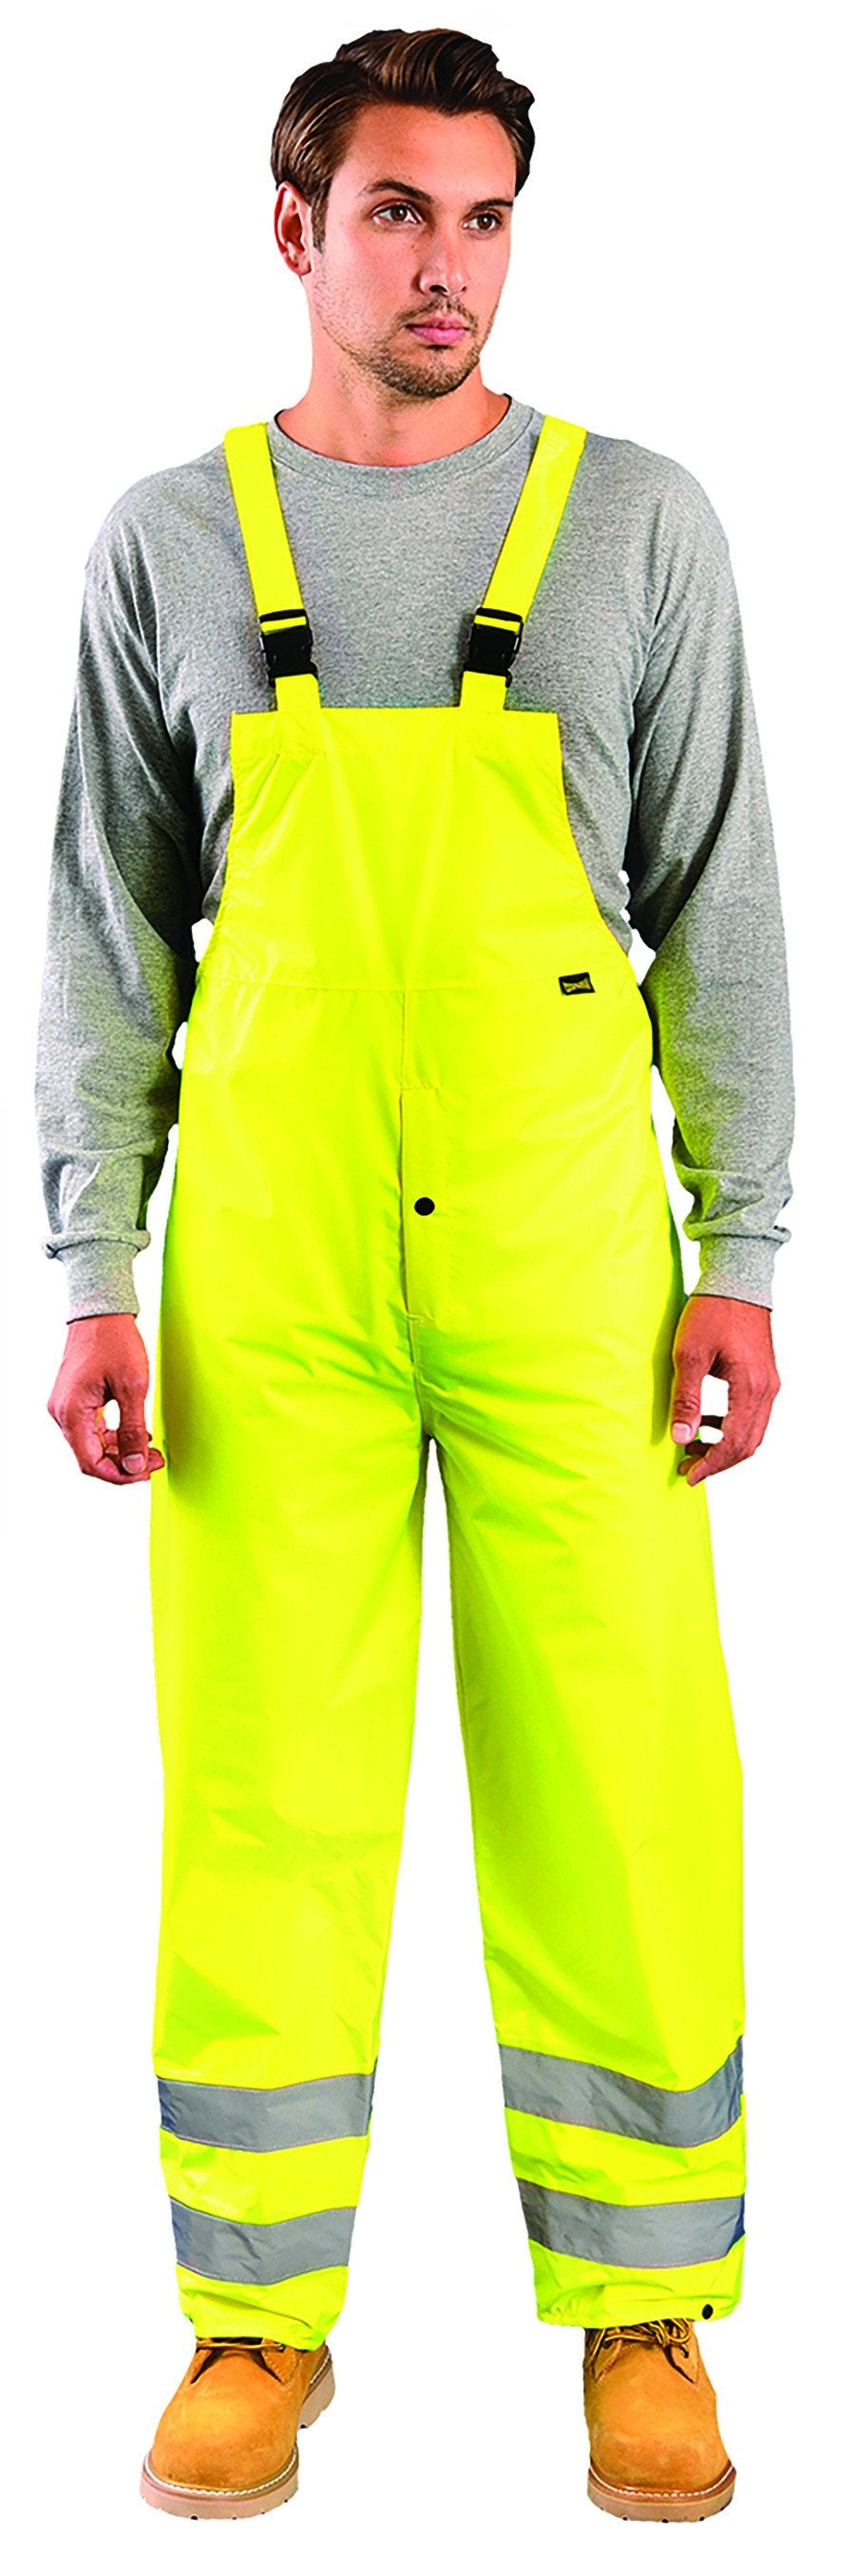 Premium Breathable Jacket - 4XL / Fluorescent Yellow